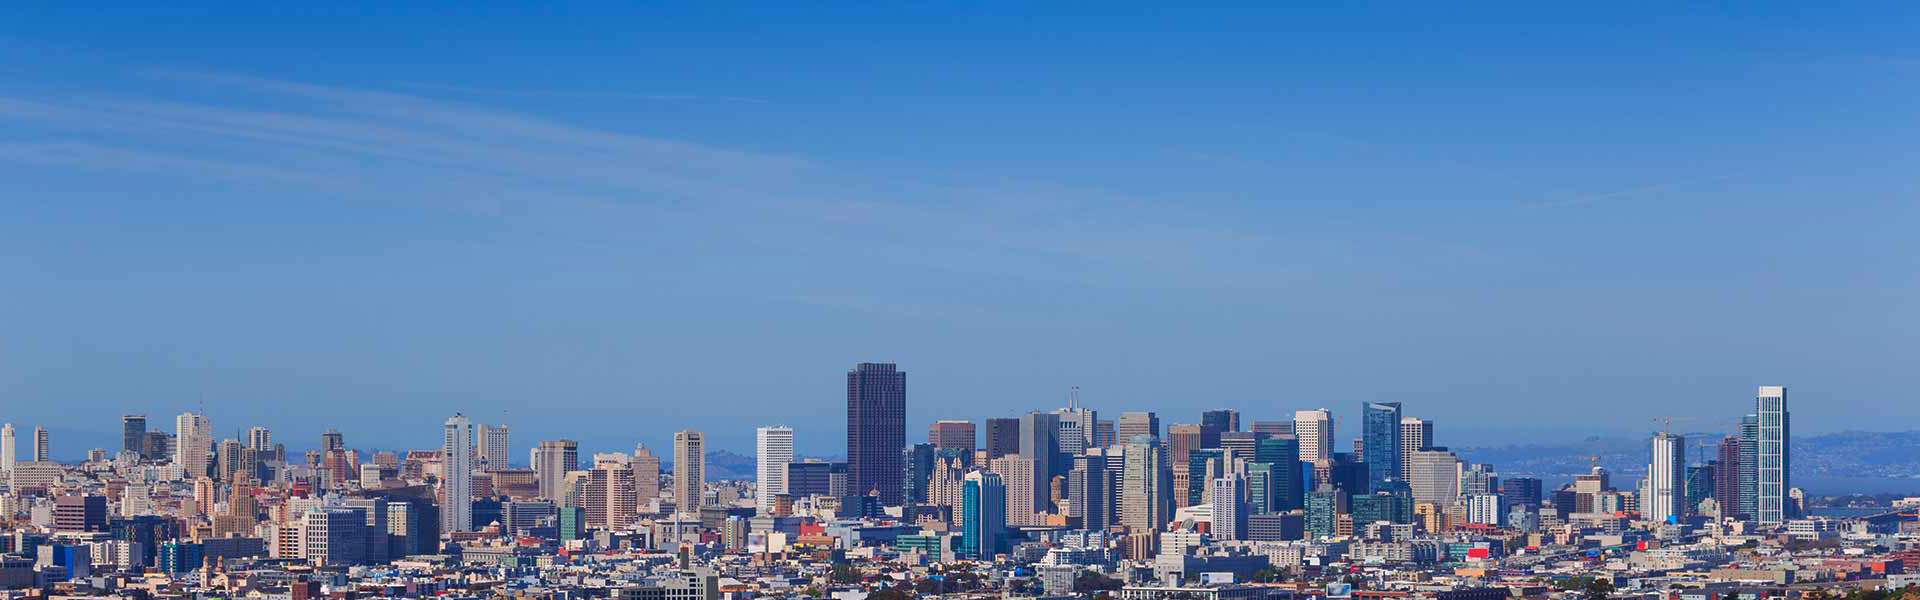 View od San Francisco skyline in afternoon